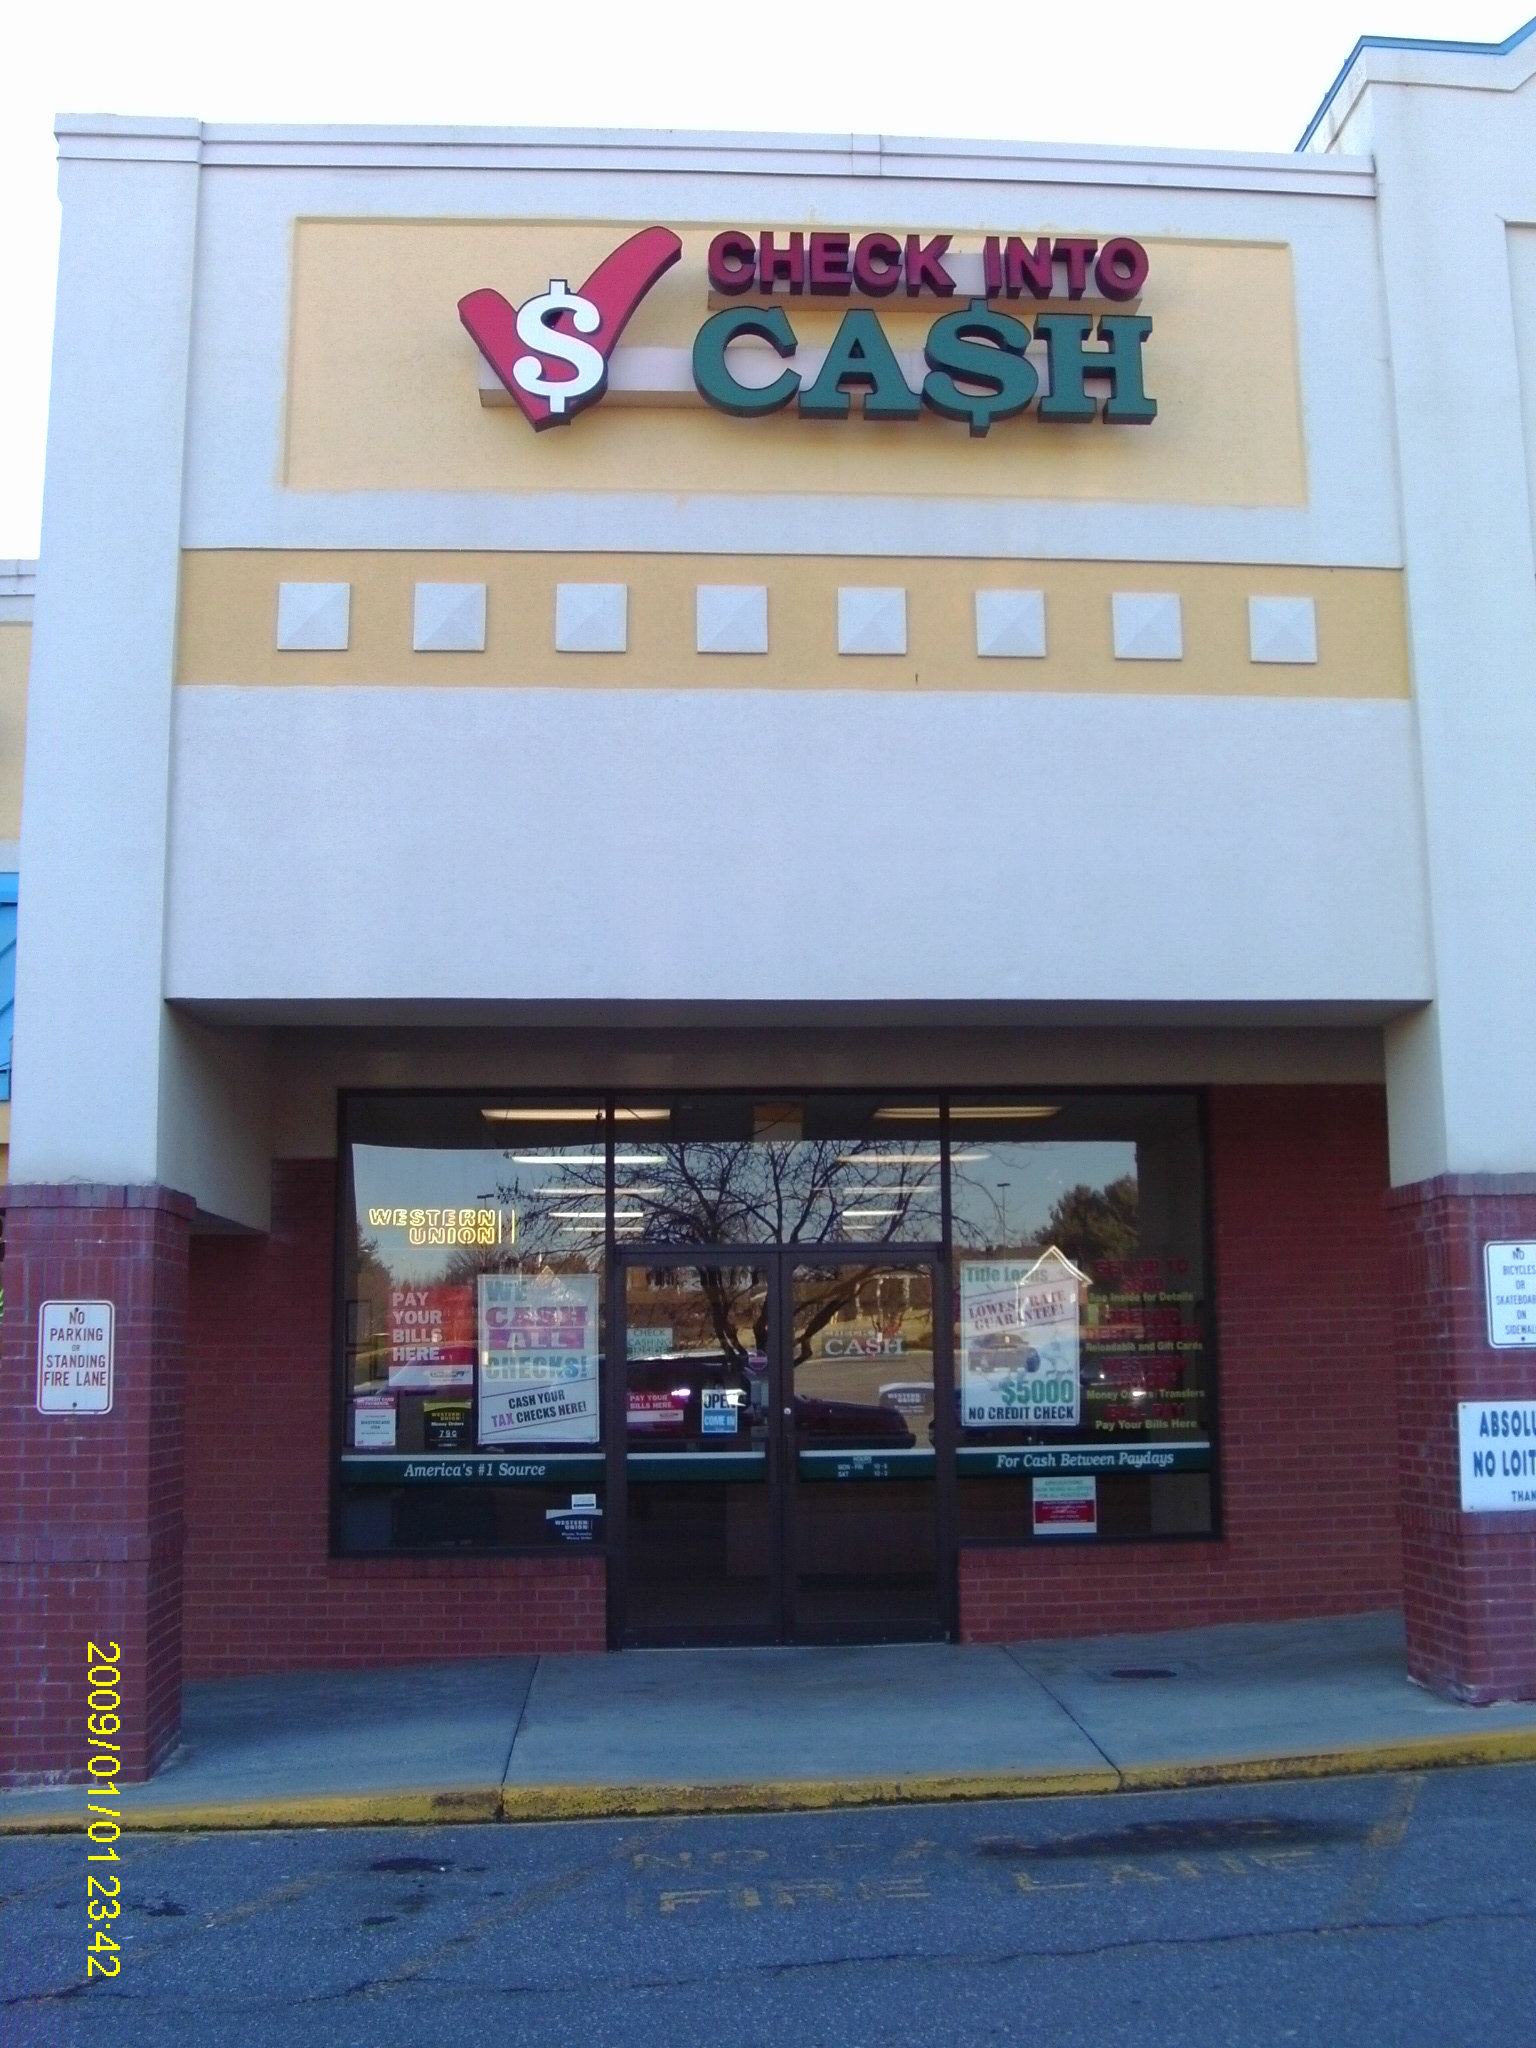 Payday loans fort mcmurray image 2